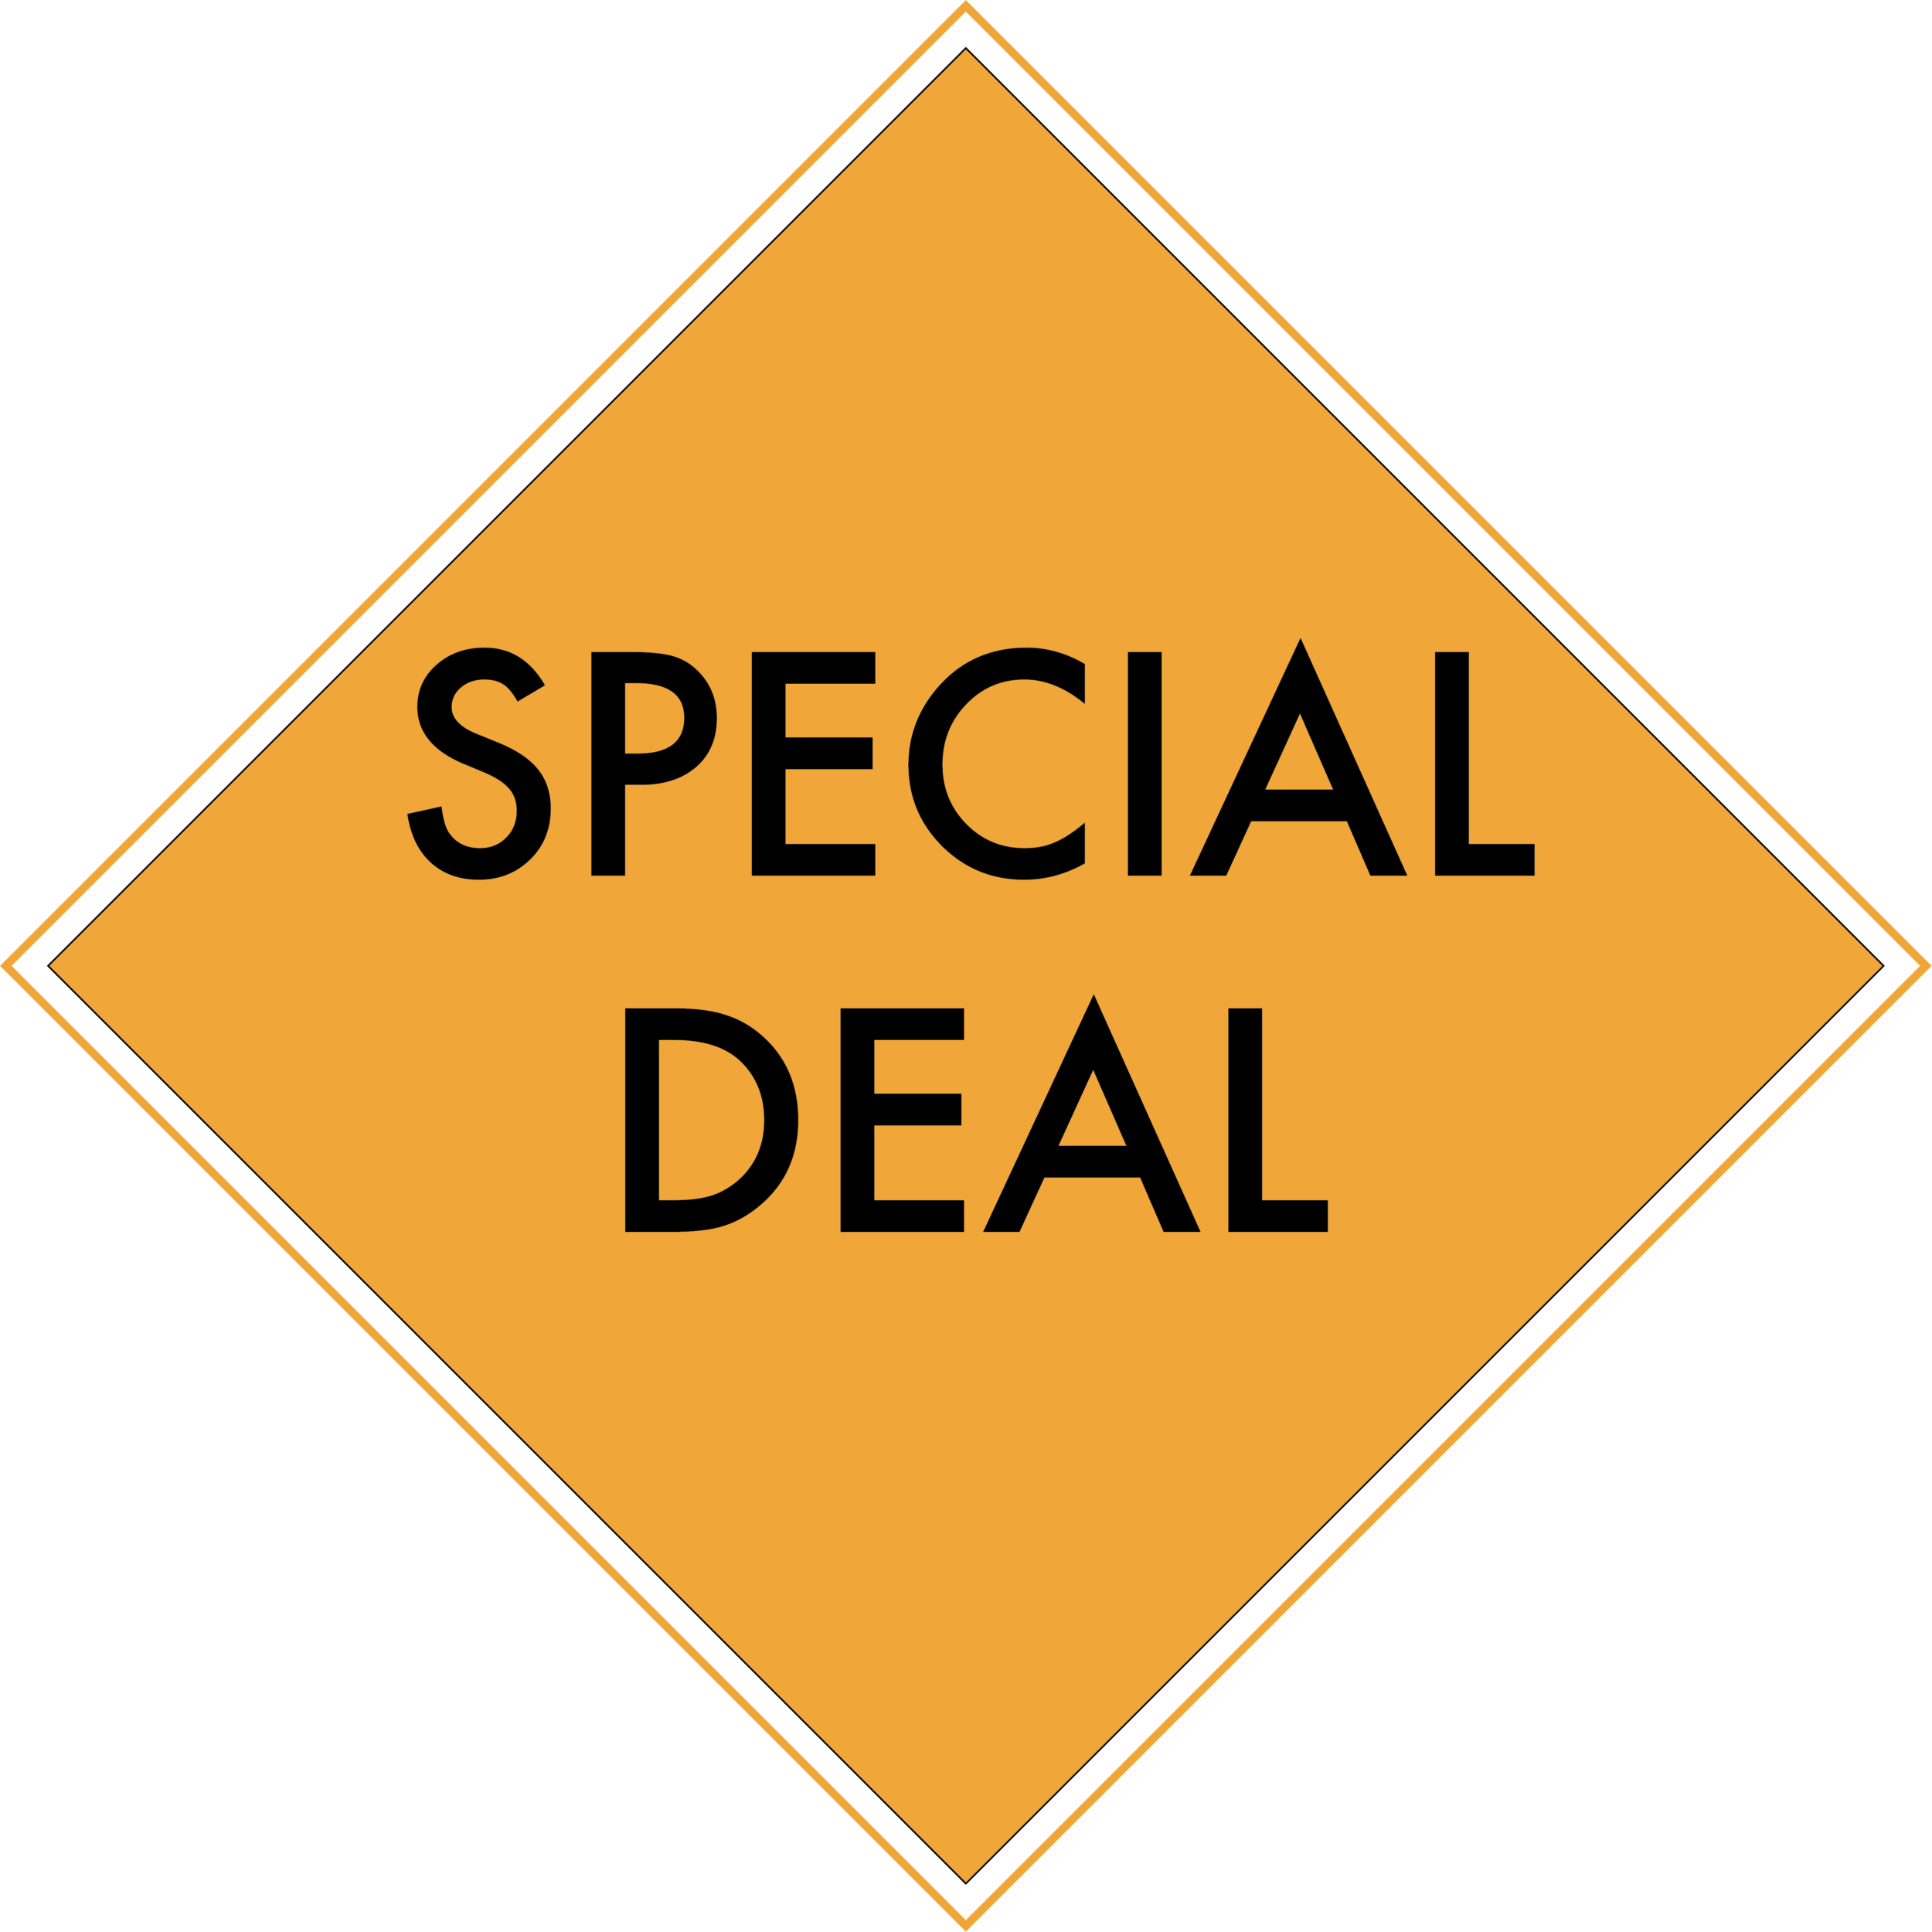 Speical Deal.png